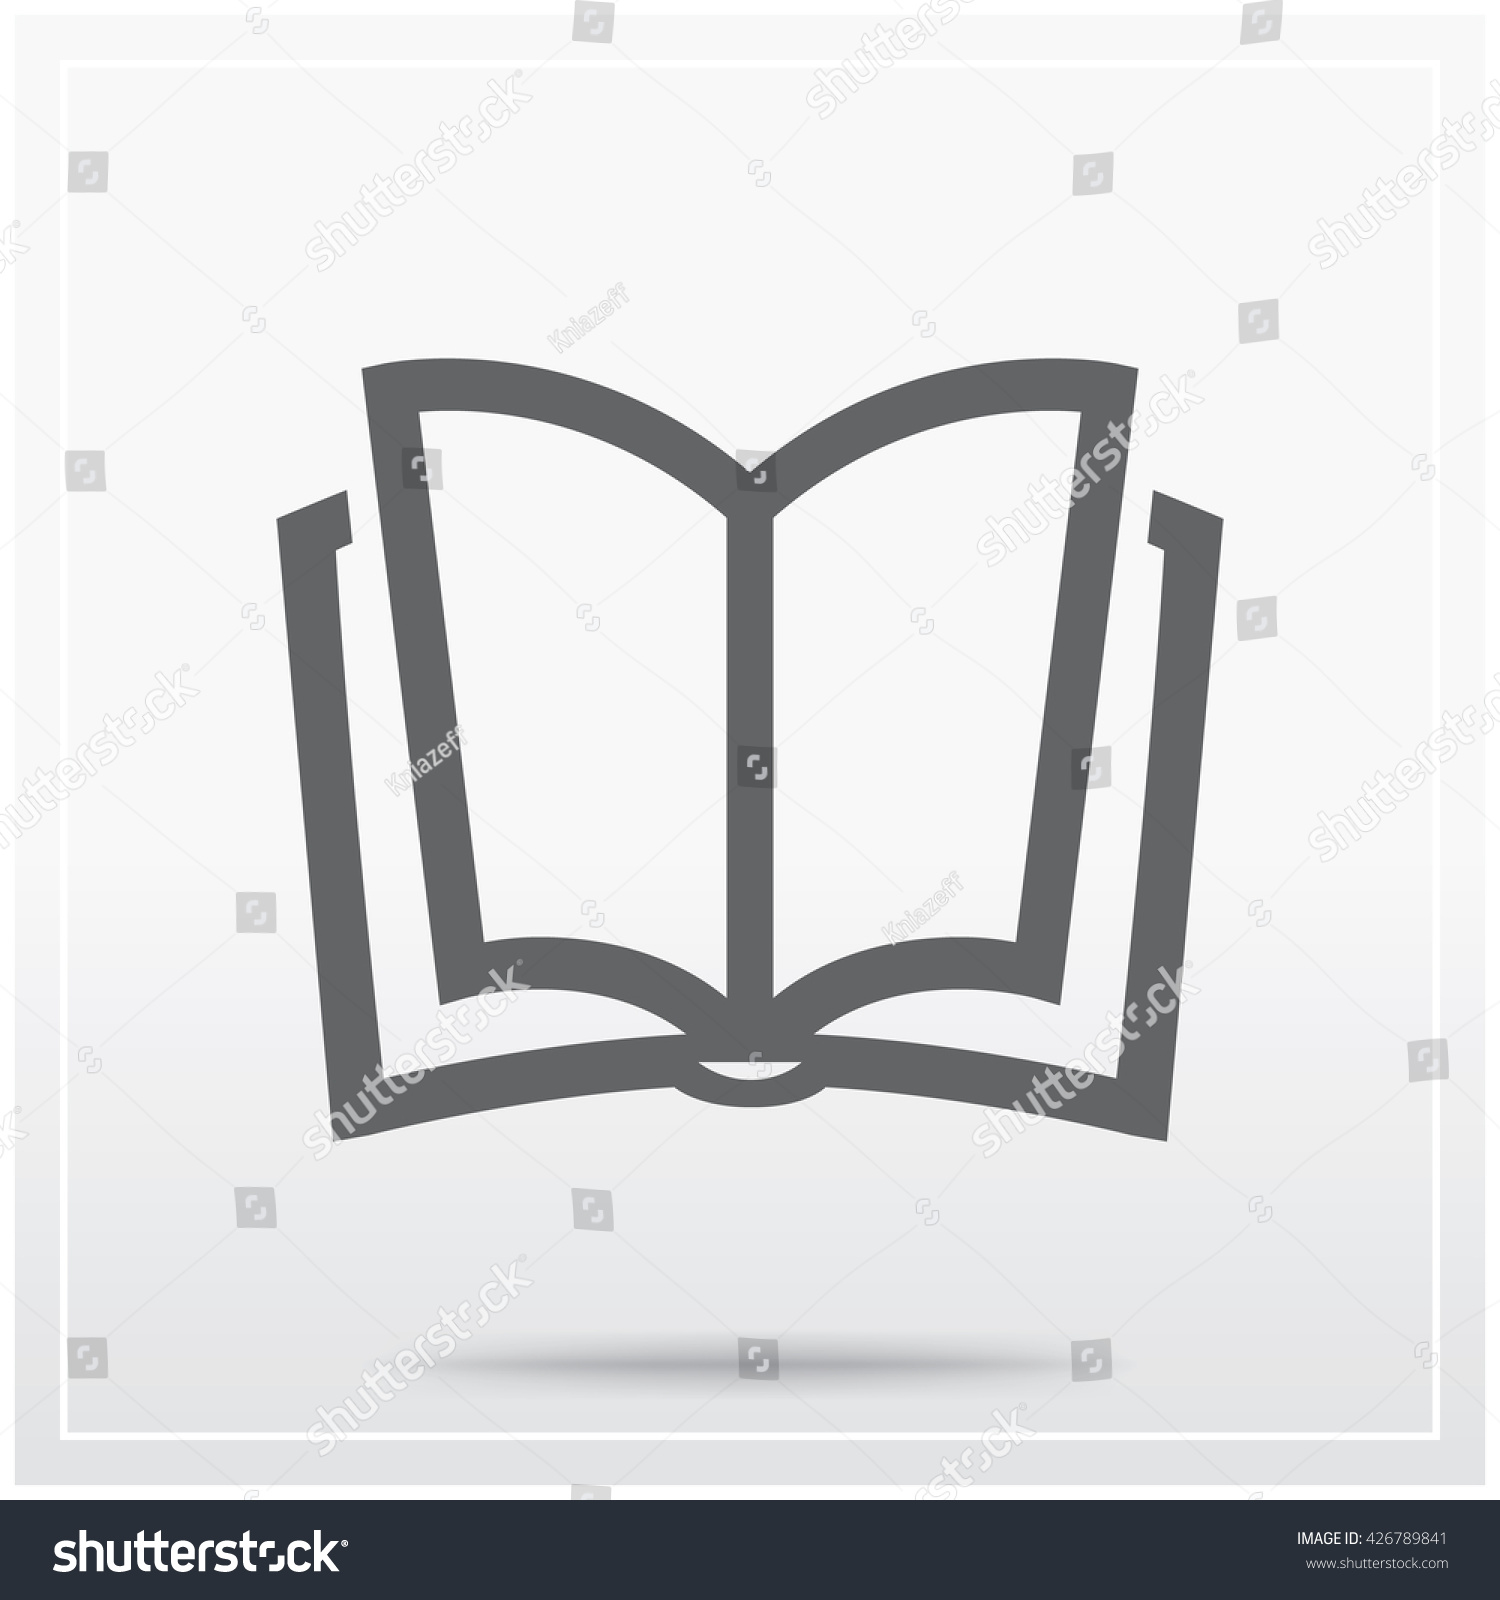 Book Symbol Education Libraries Text Sources Stock Vector Royalty